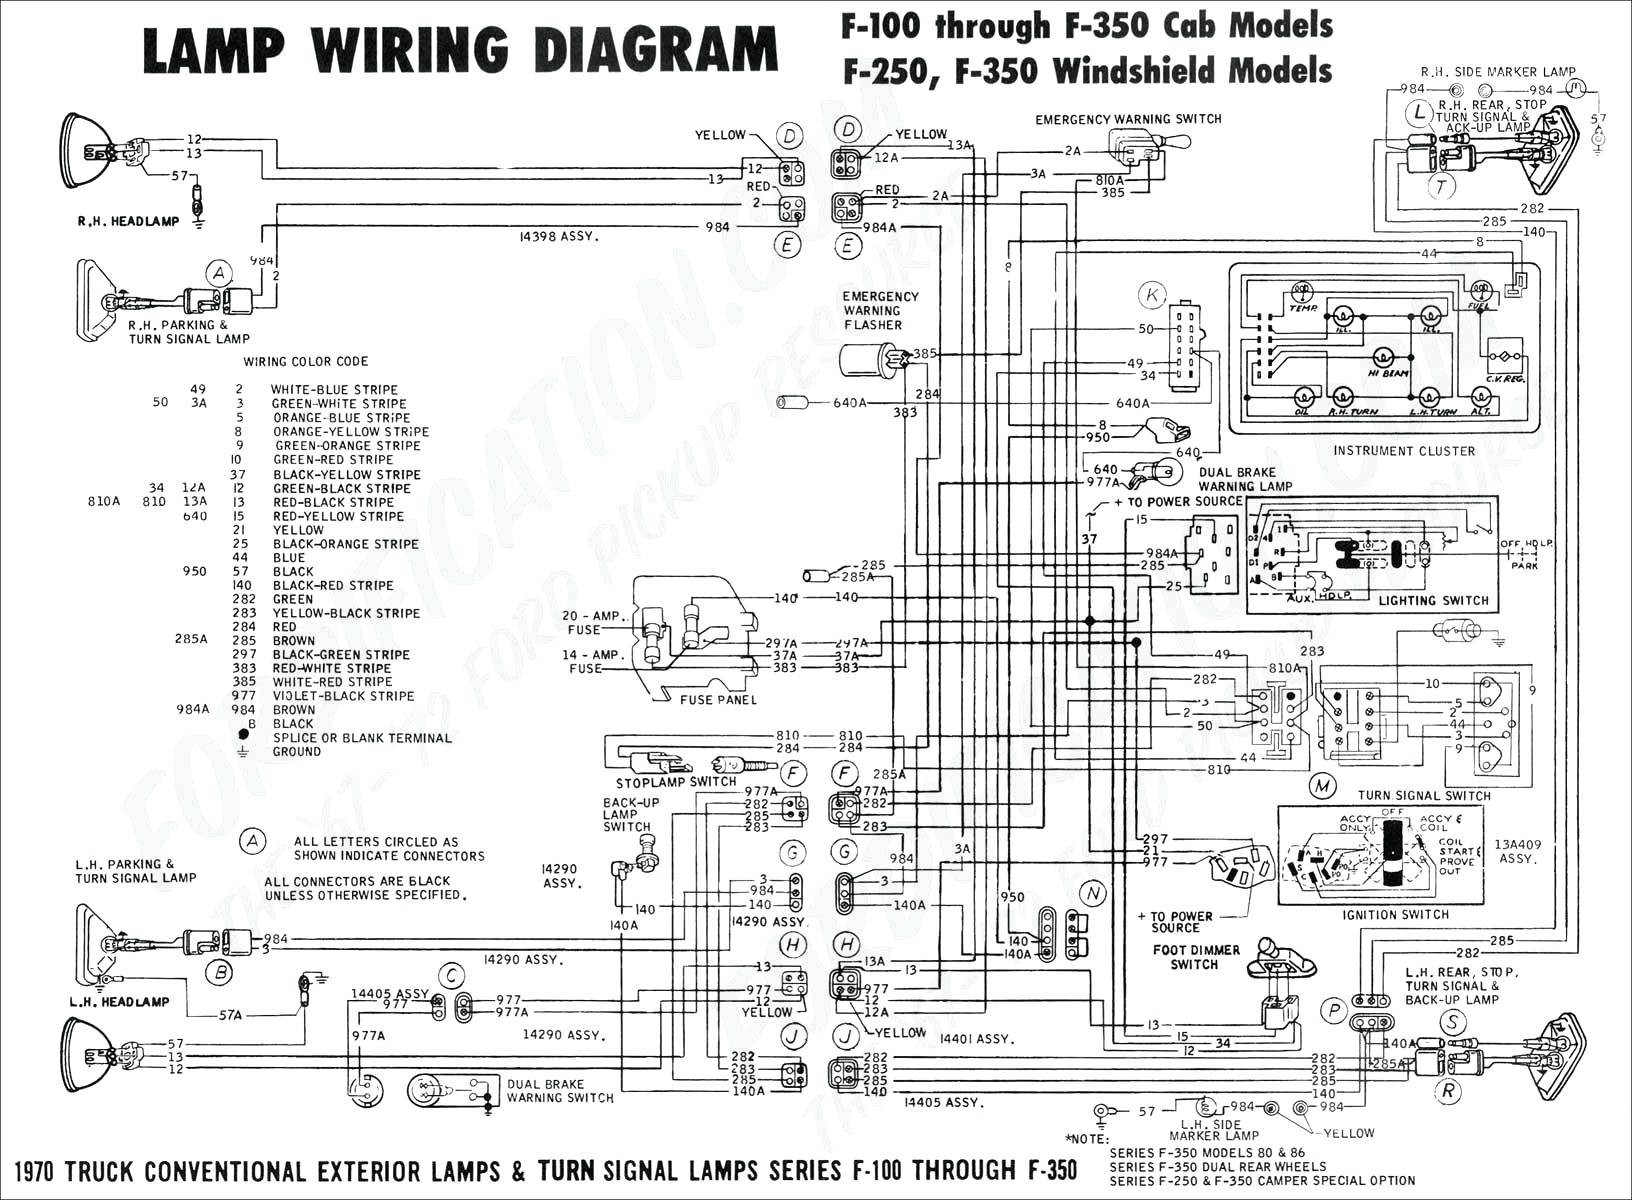 1997 dodge dakota tail light wiring diagram s10 cruise control f150 lights best site